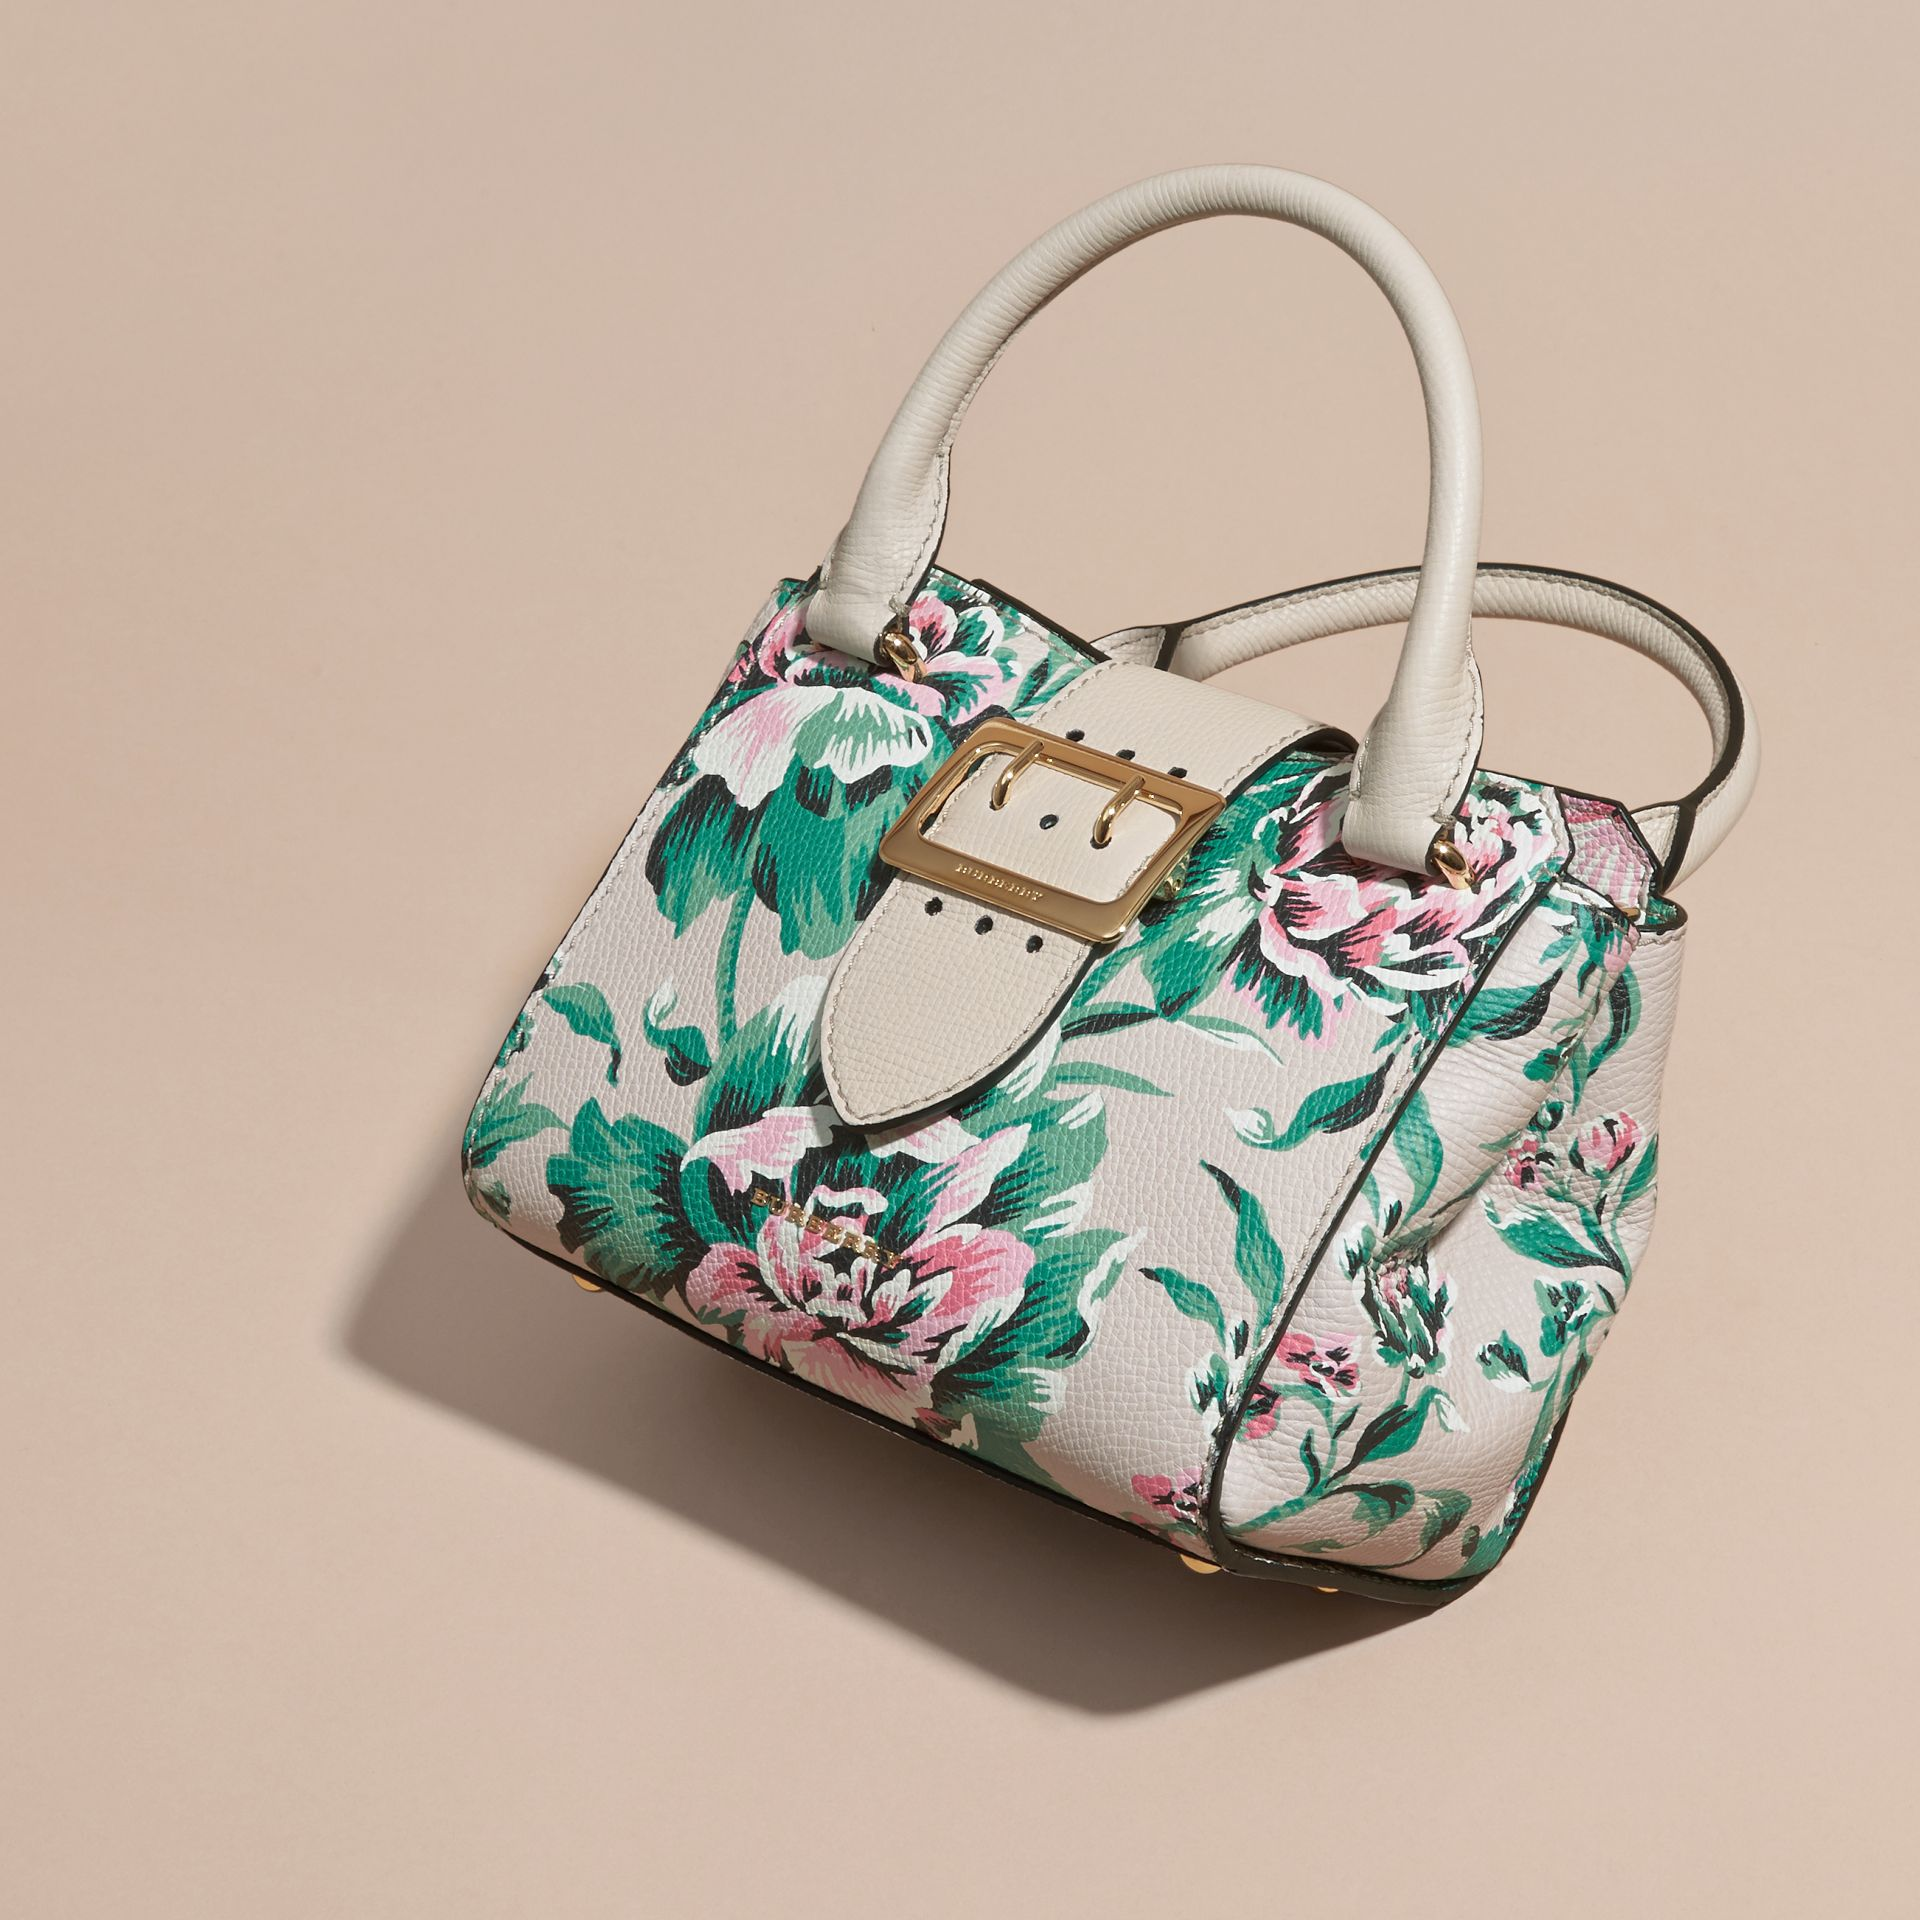 Natural/emerald green The Small Buckle Tote in Peony Rose Print Leather Natural/emerald Green - gallery image 8